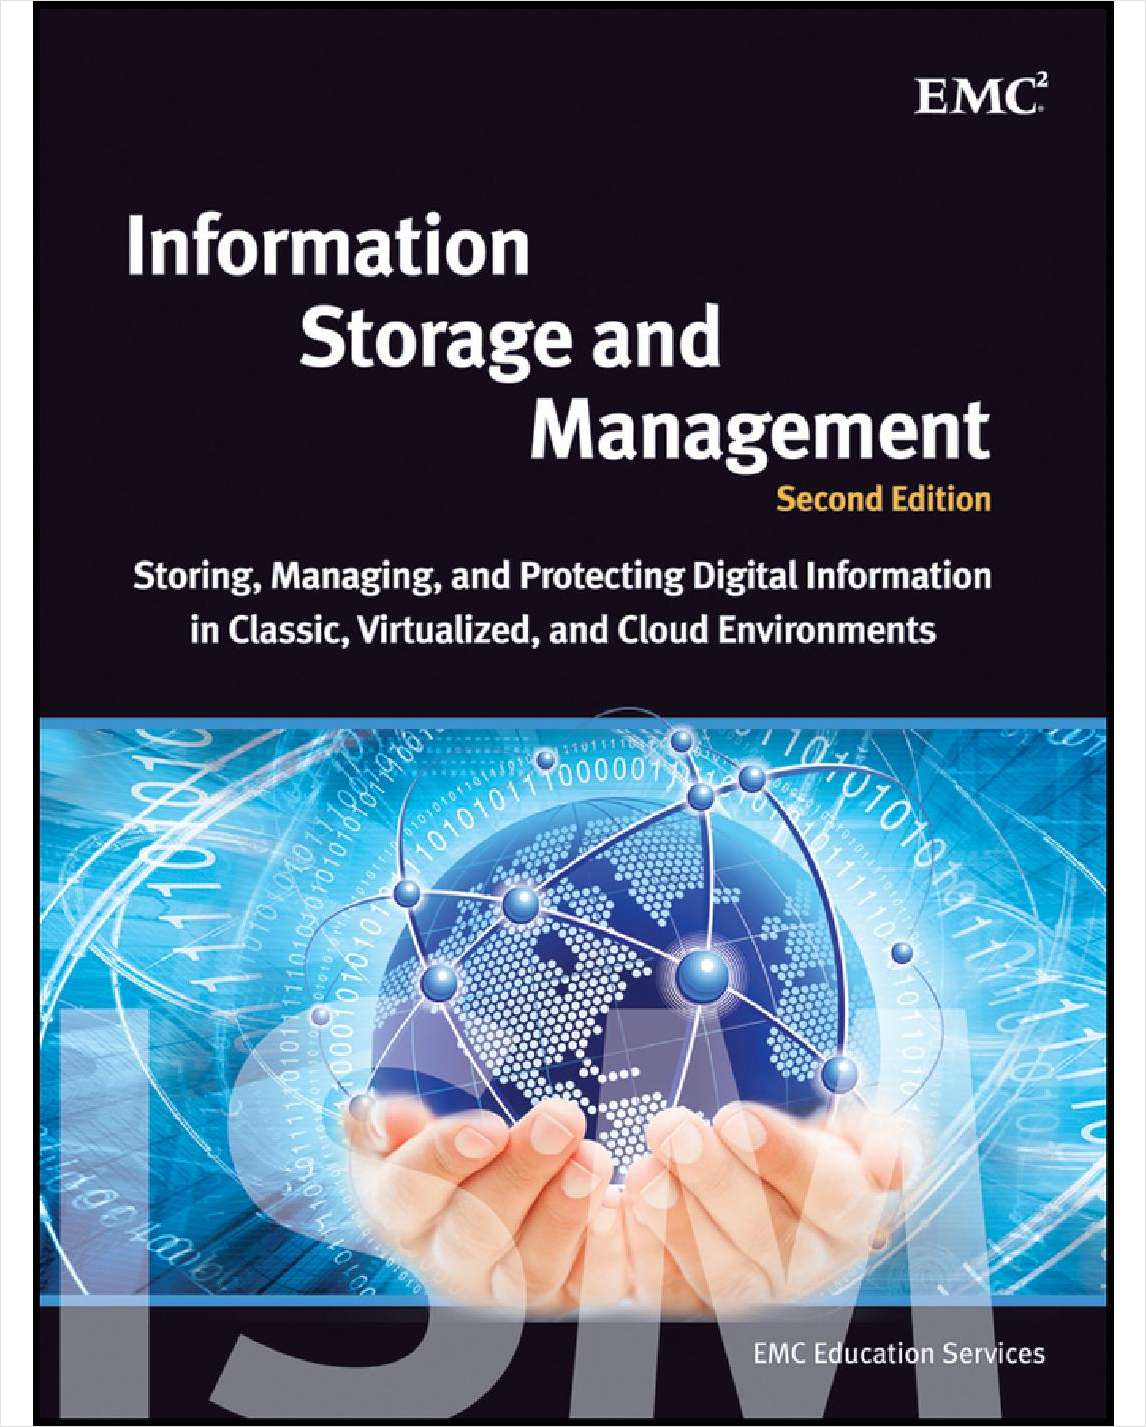 Information Storage and Management--Free Sample Chapter